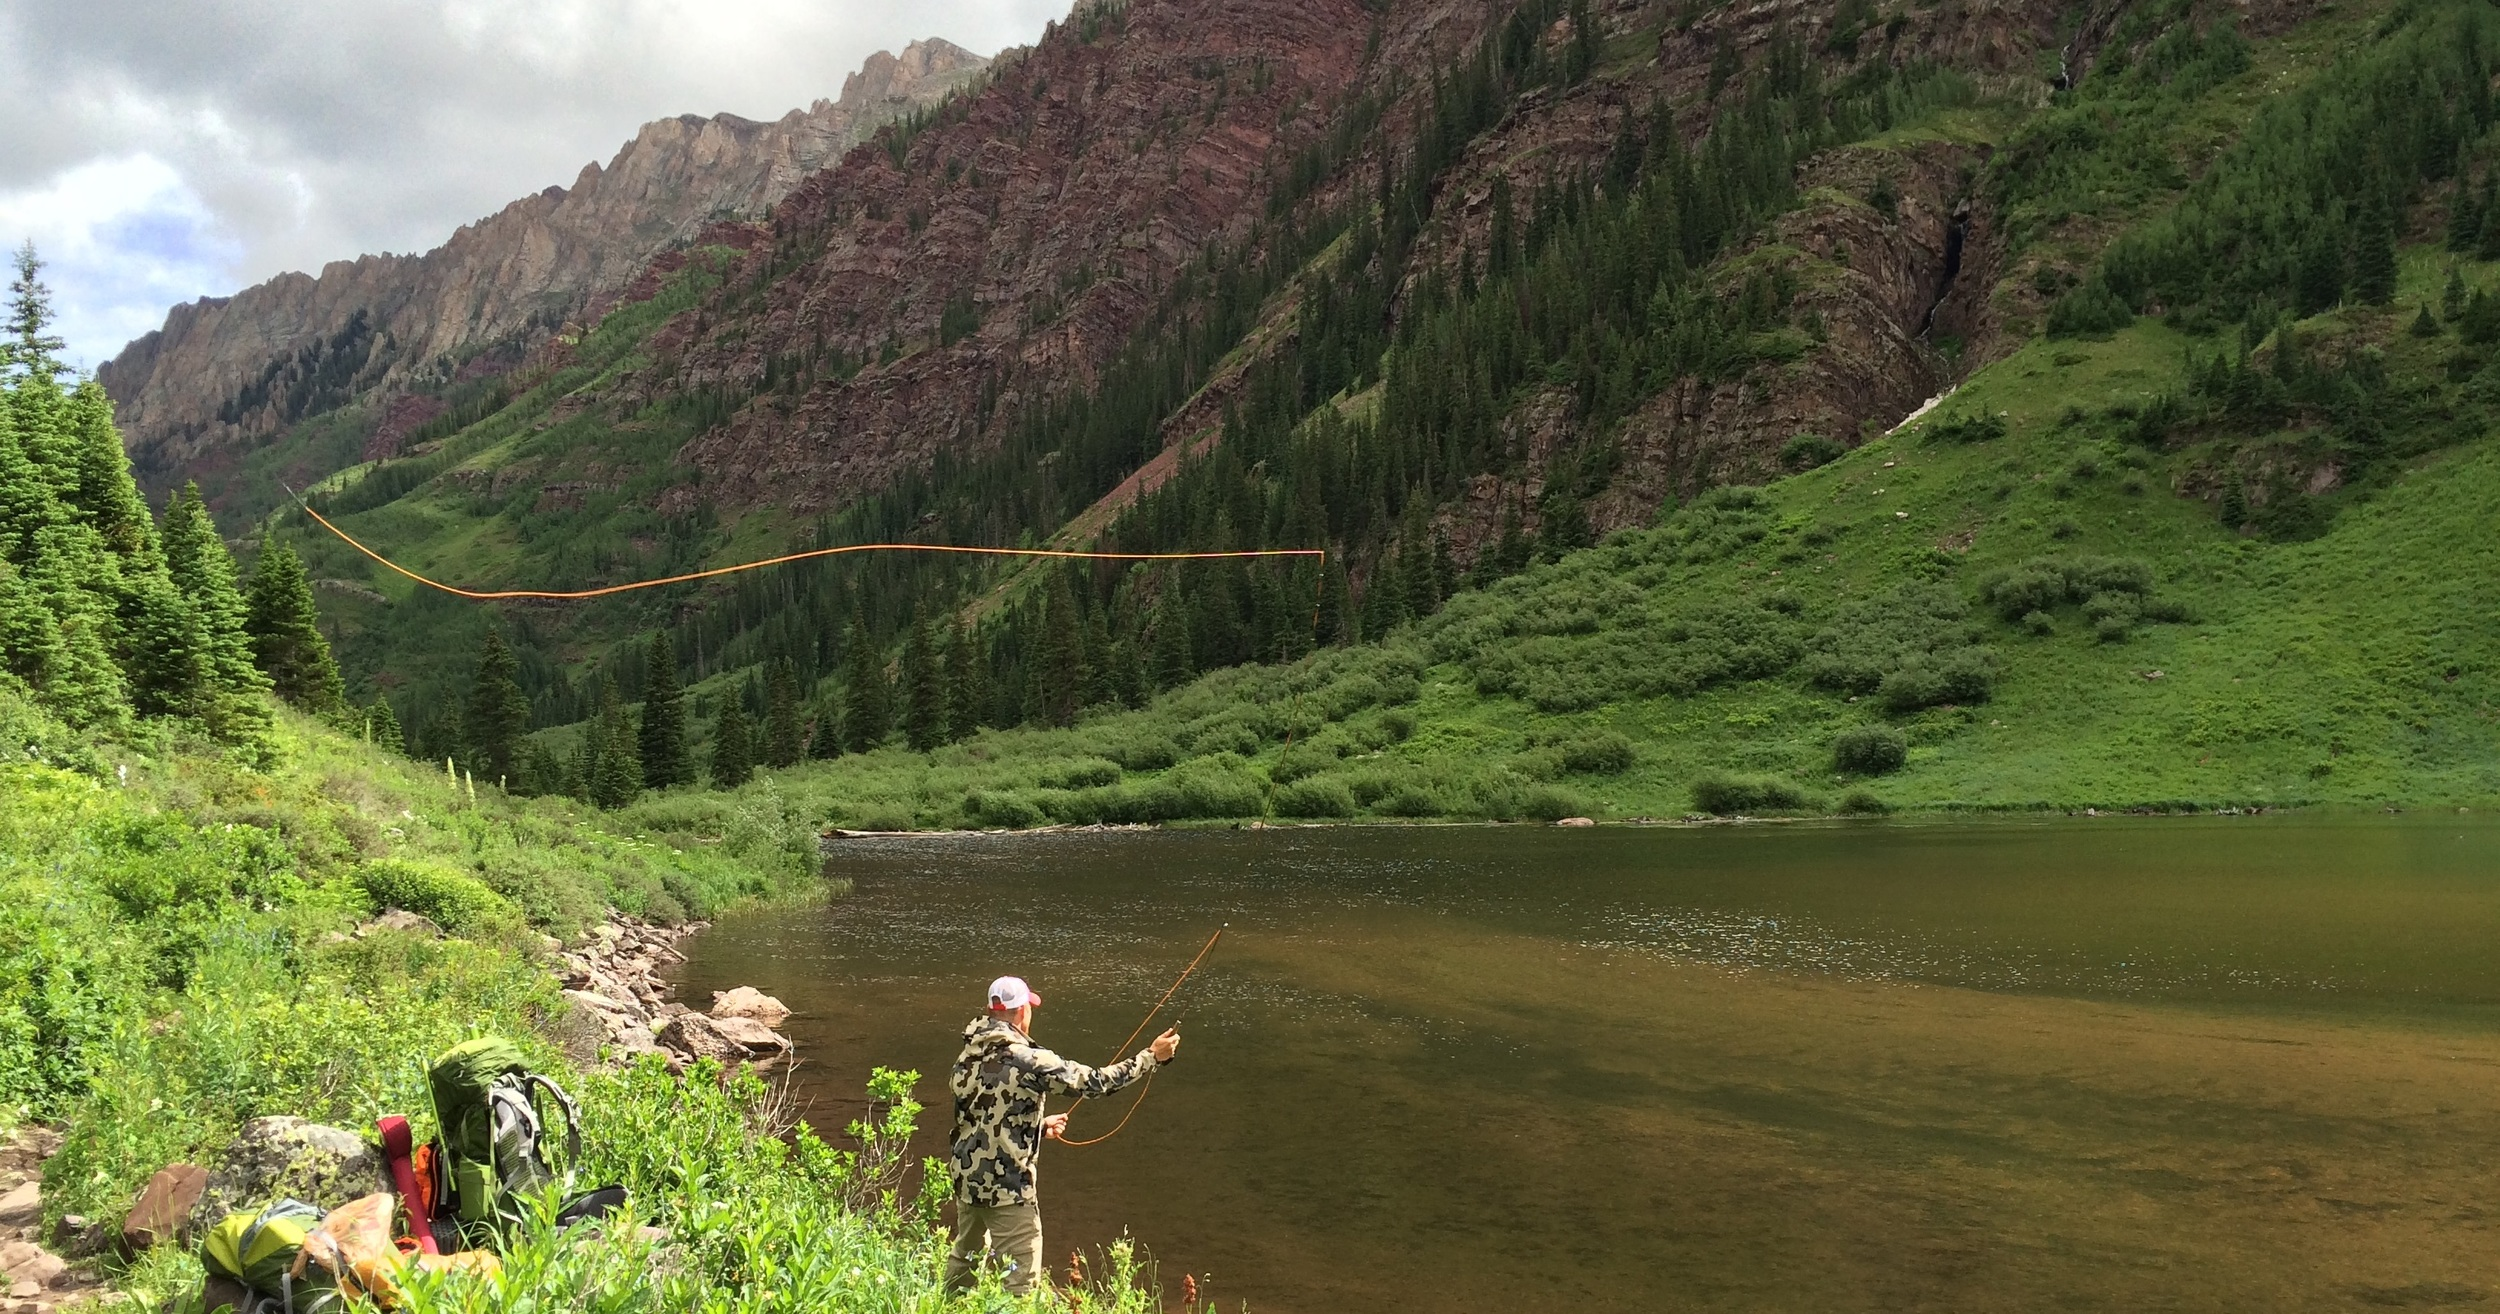 Dan, fly fishing the Maroon Bells - Snowmass Wilderness